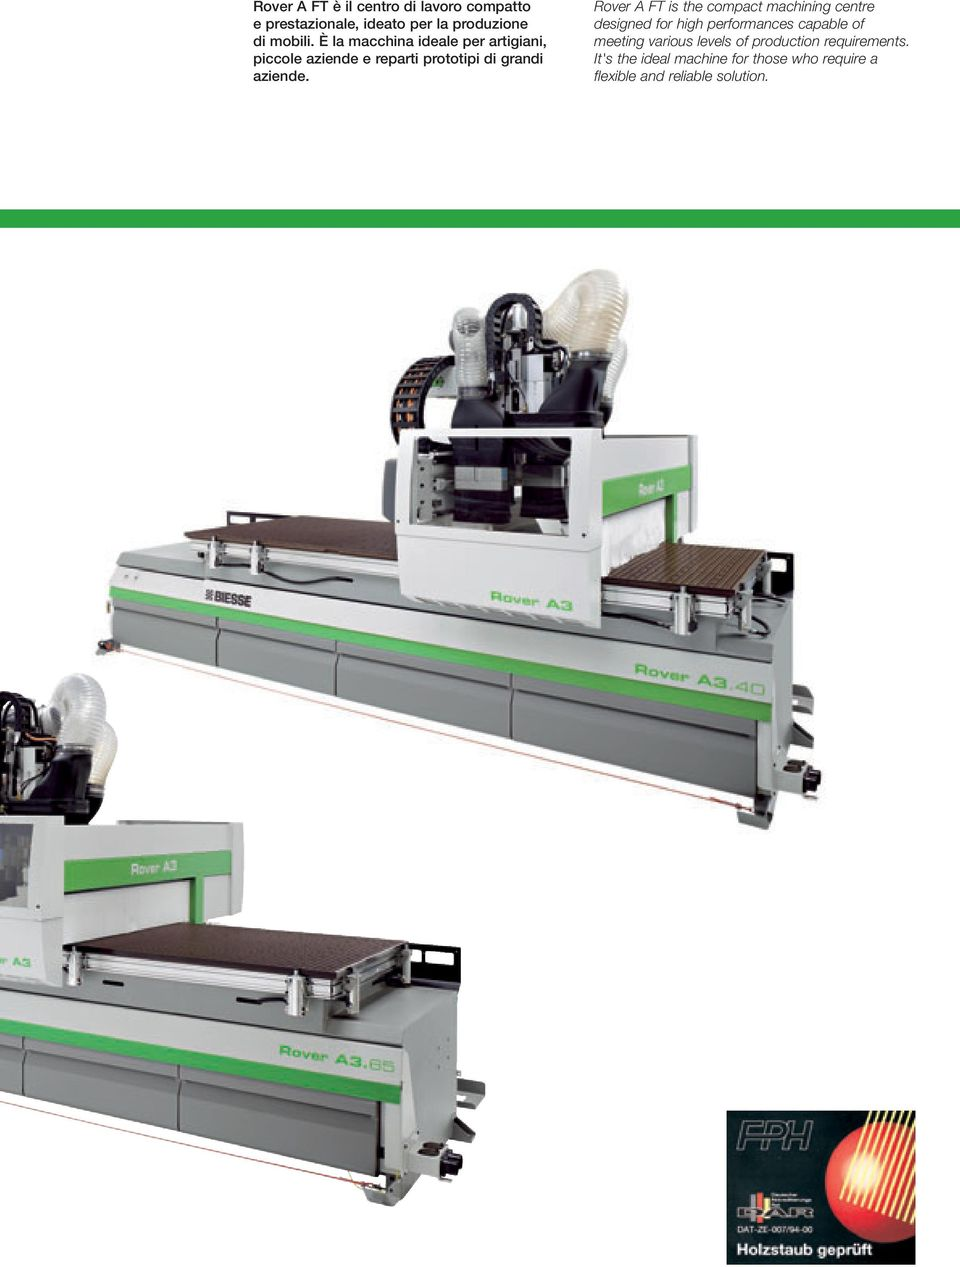 Rover A FT is the compact machining centre designed for high performances capable of meeting